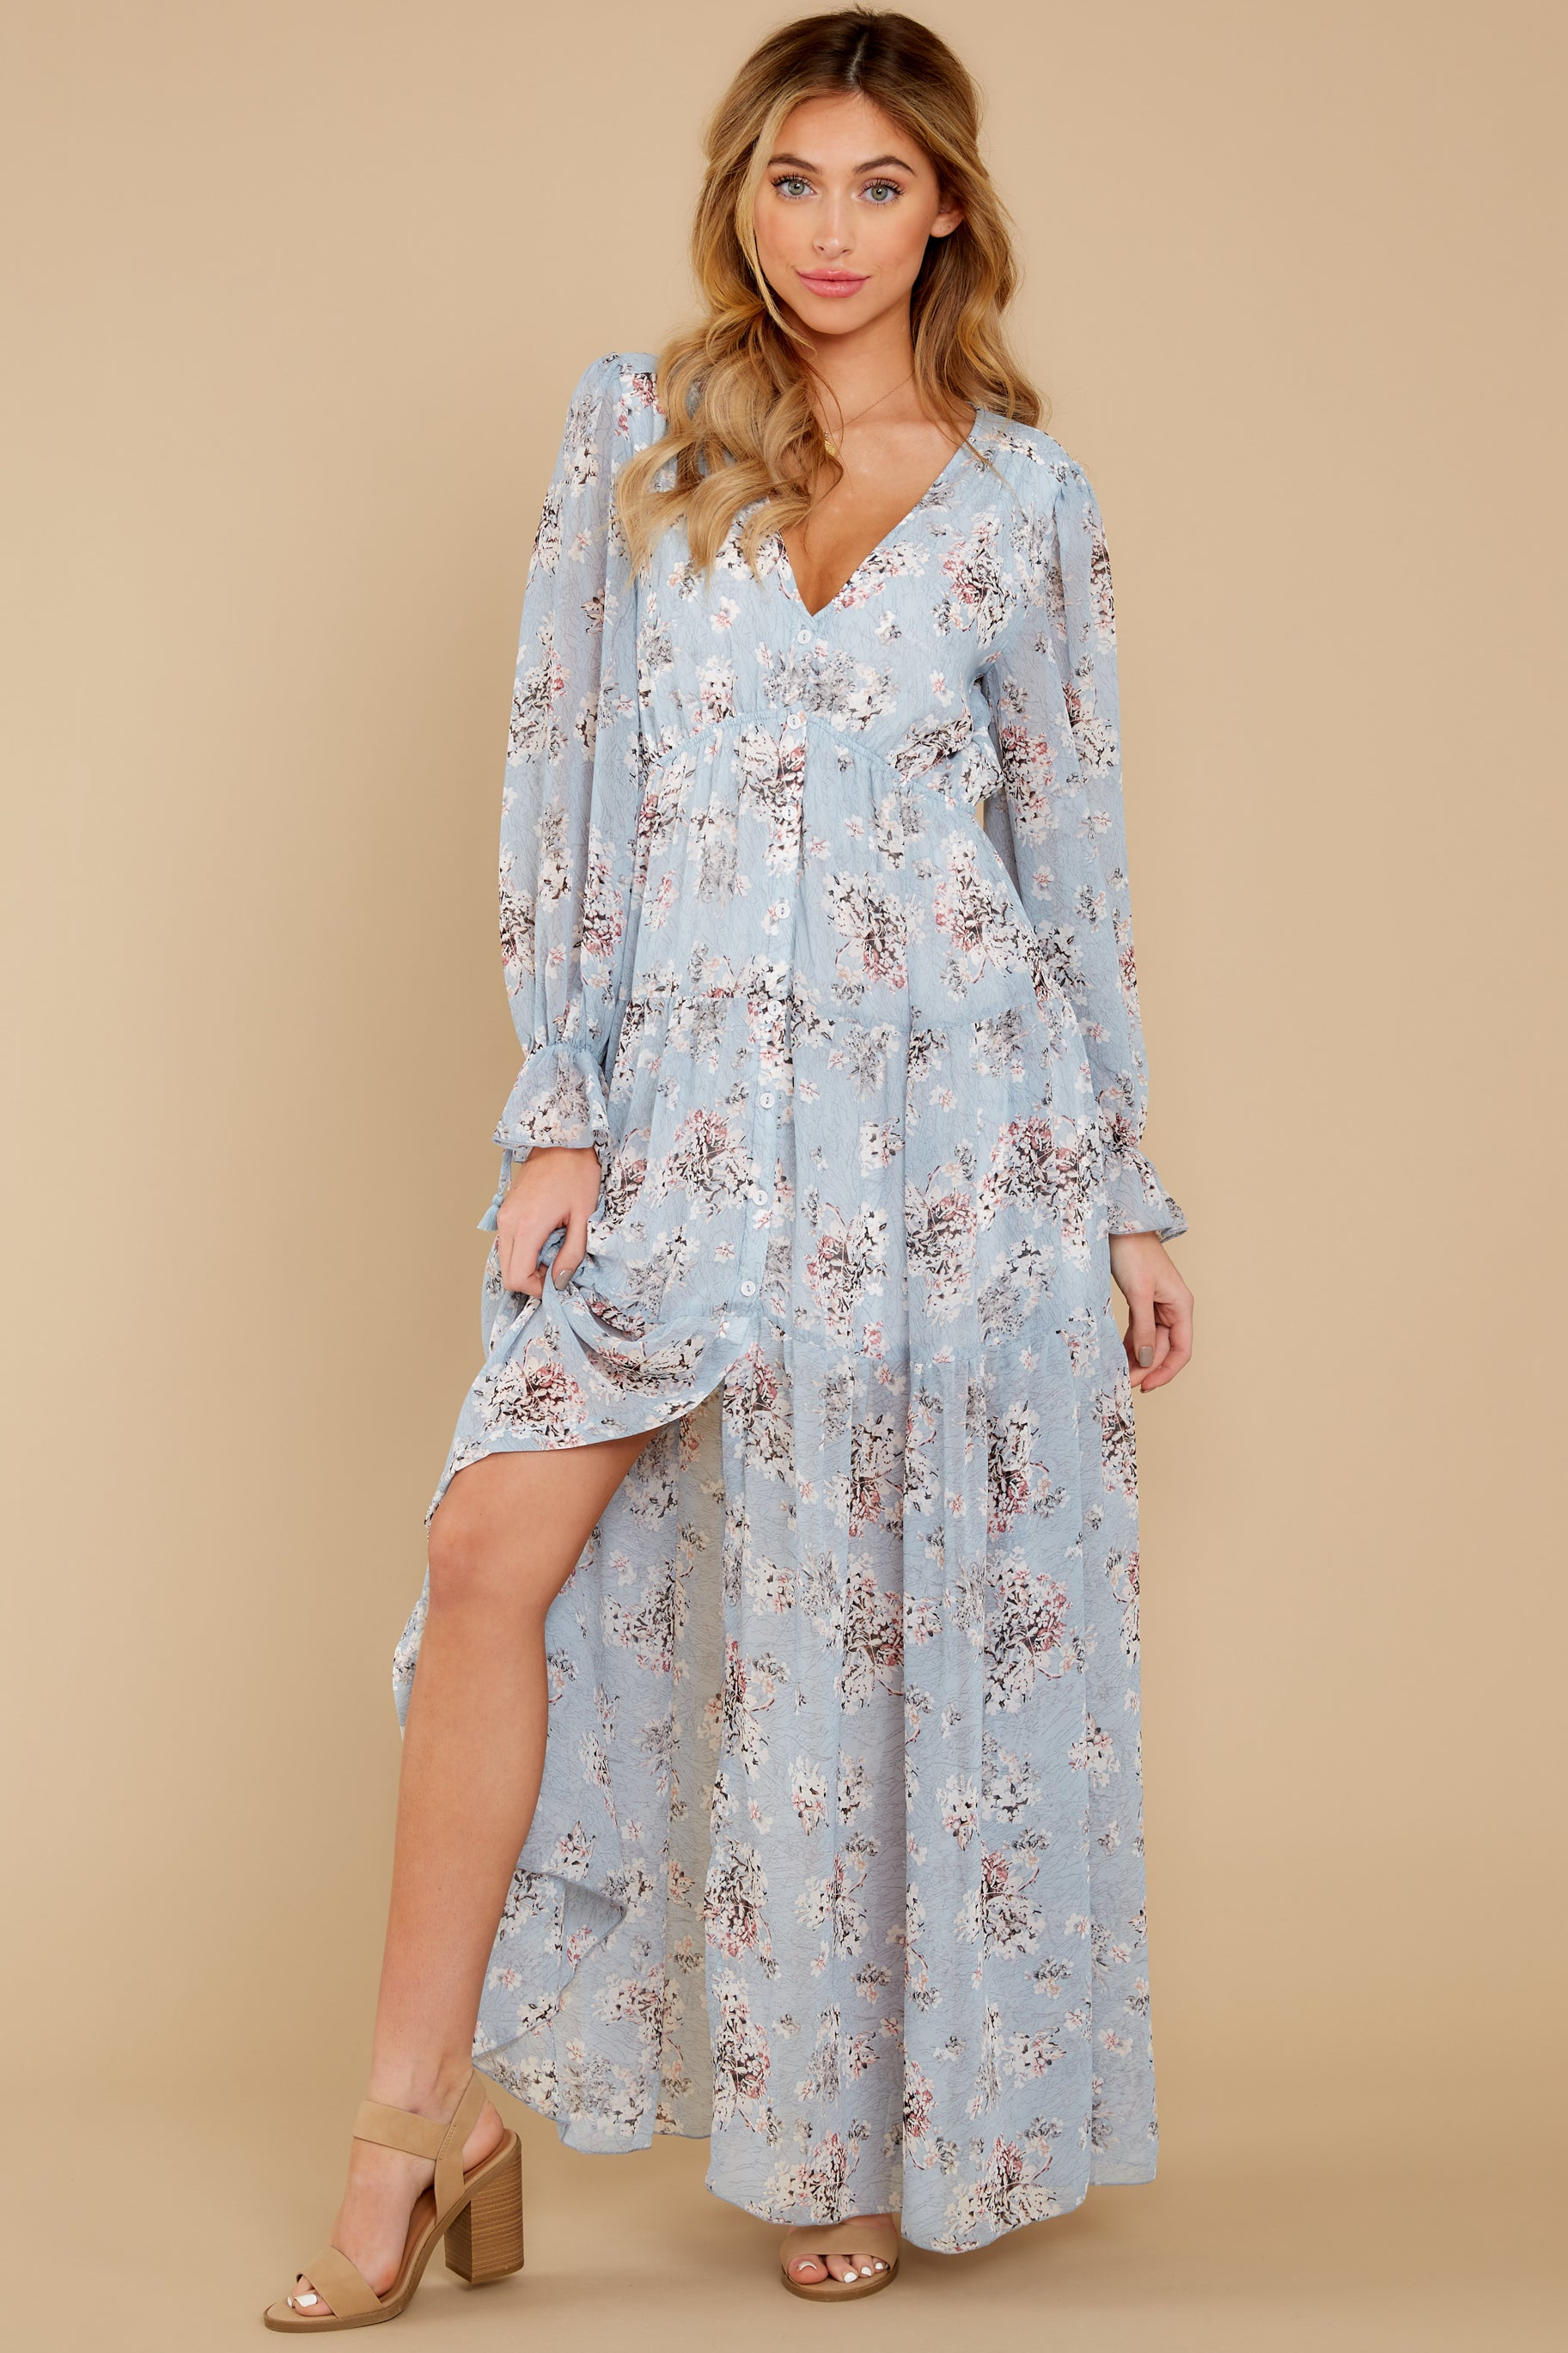 6 Love In Bloom Light Blue Floral Print Maxi Dress at reddress.com